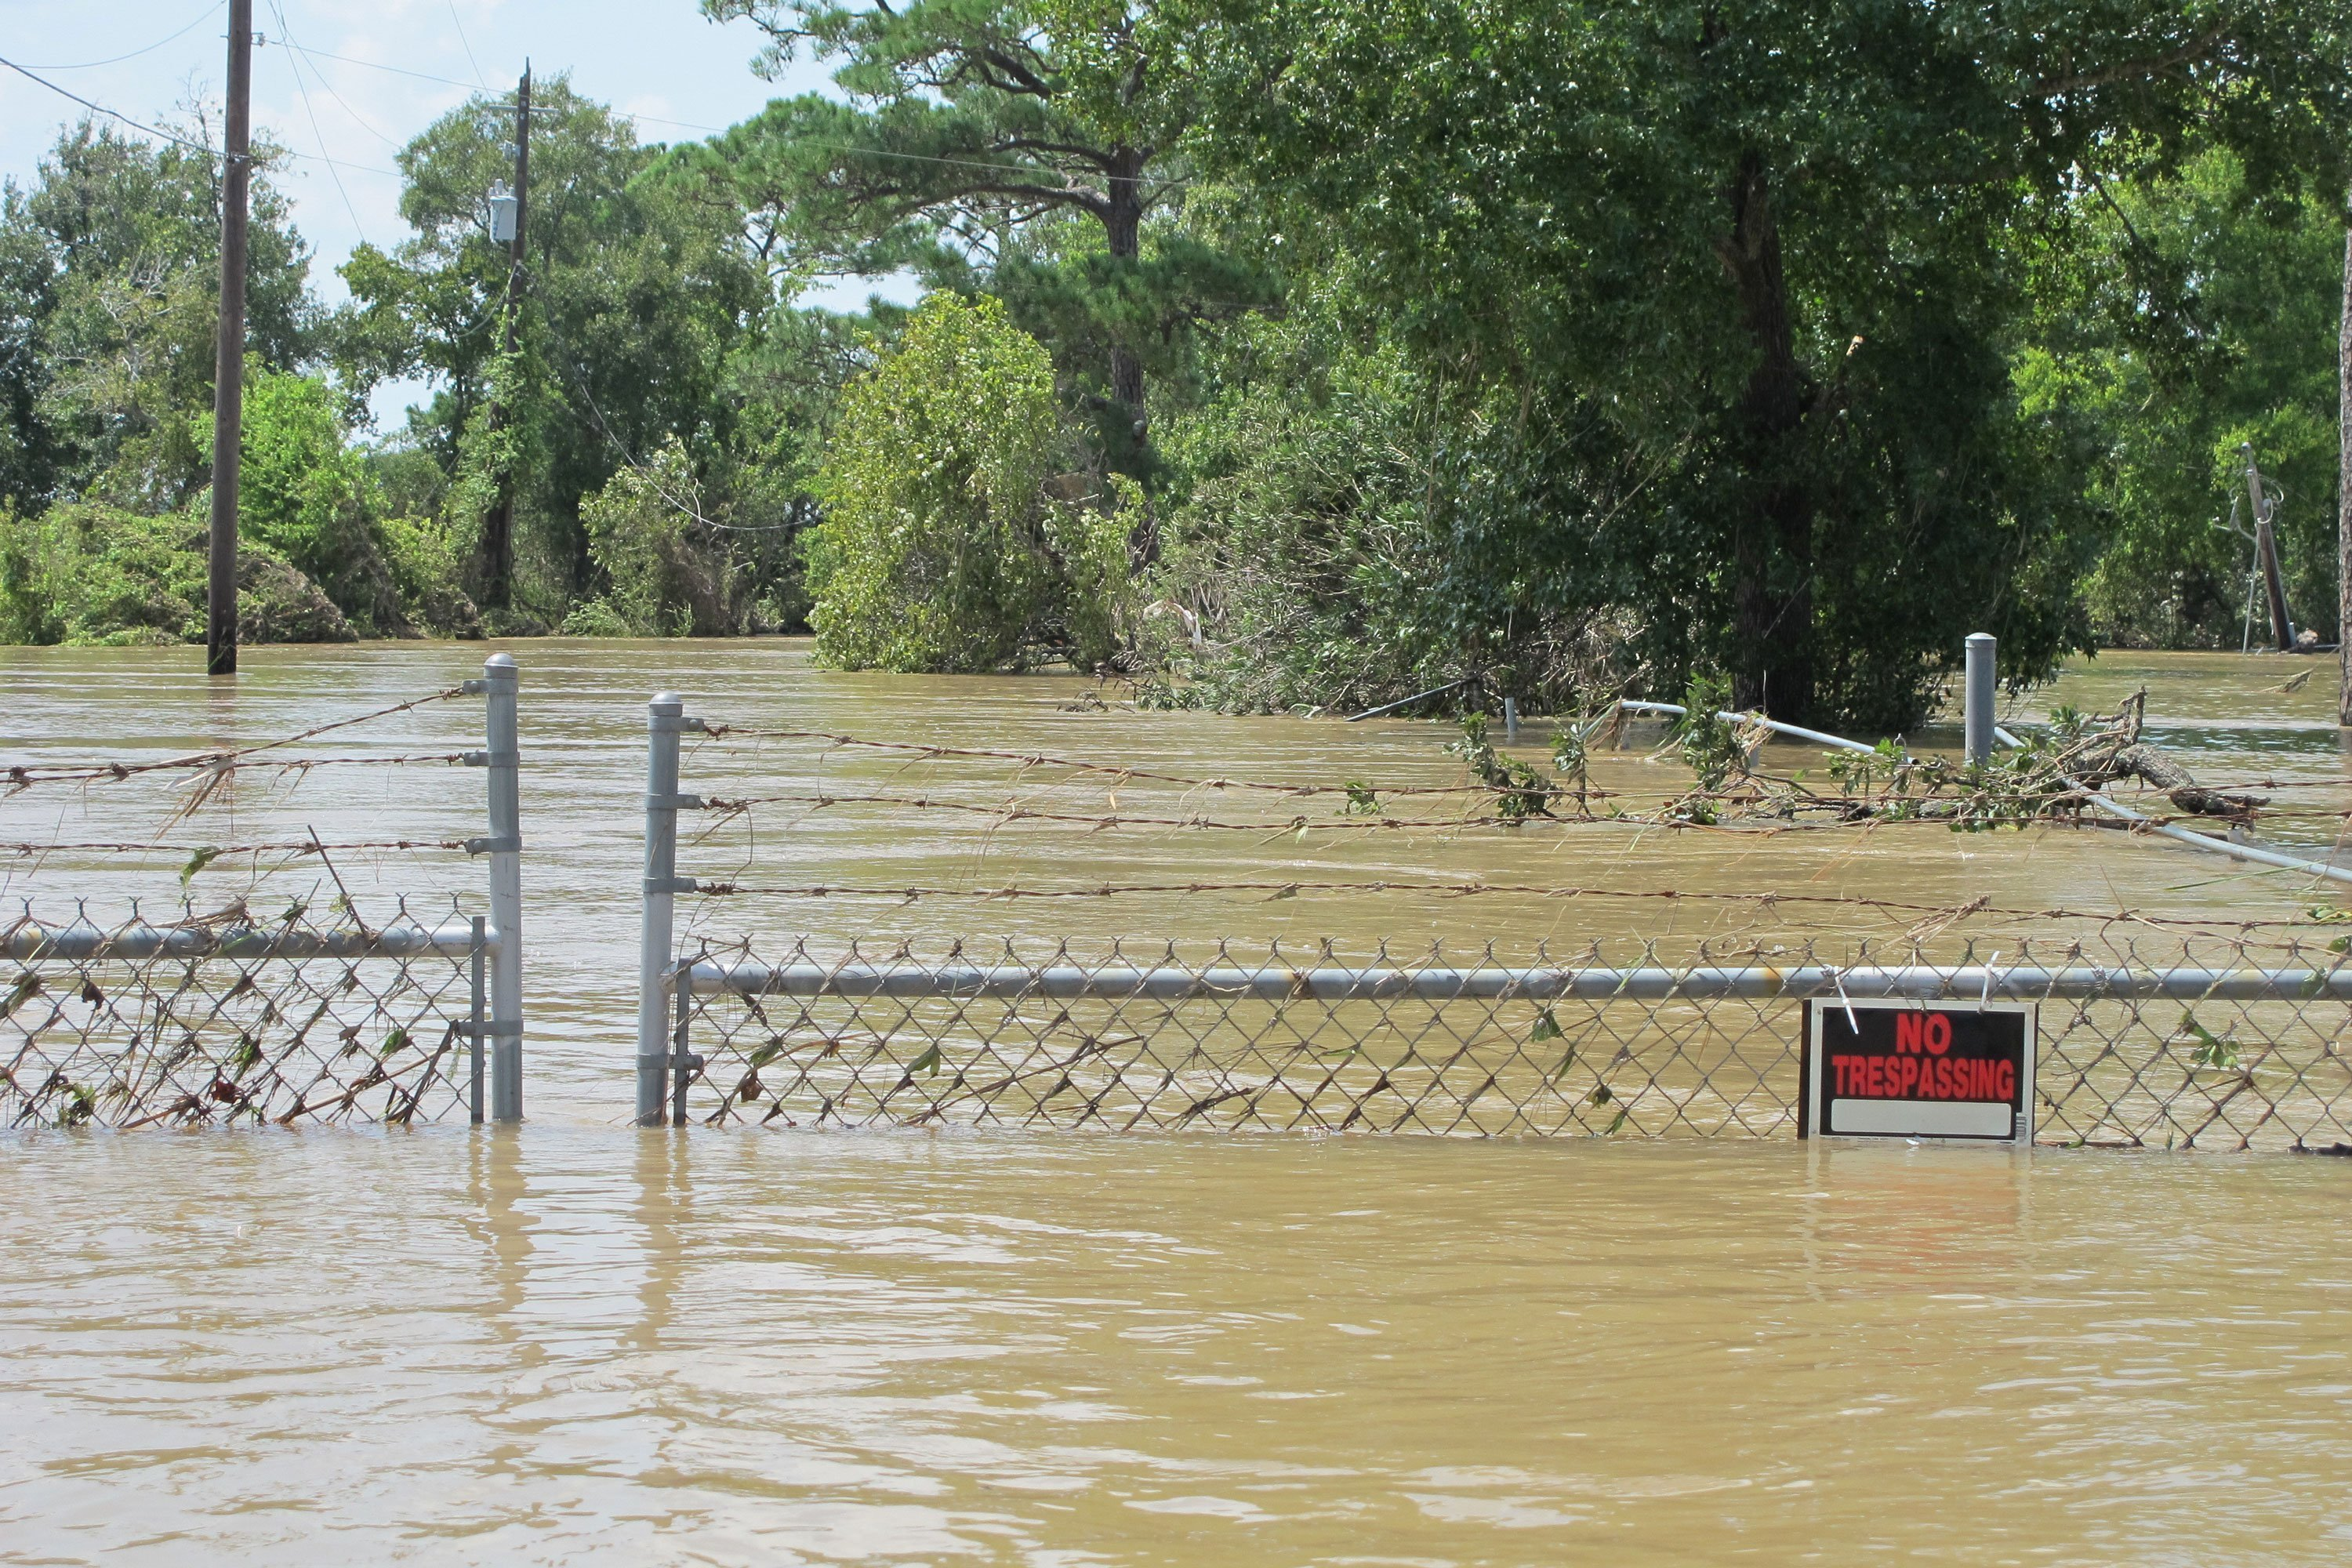 America's many toxic waste sites are in areas at risk of worsening natural disasters